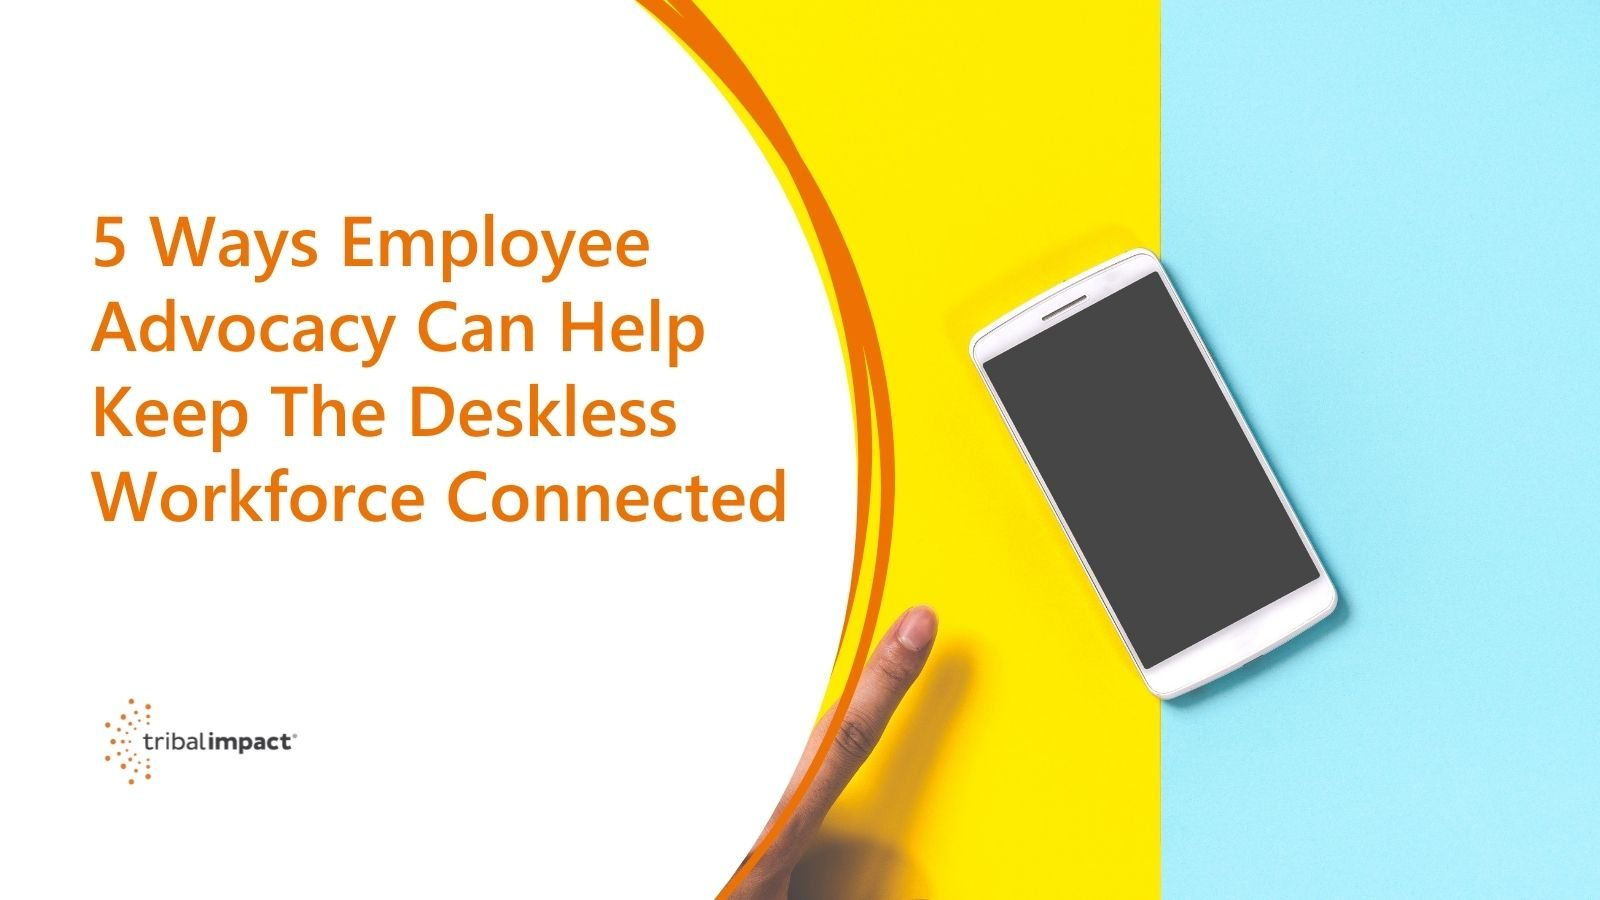 5 Ways Employee Advocacy Can Help Keep The Deskless Workforce Connected blog image